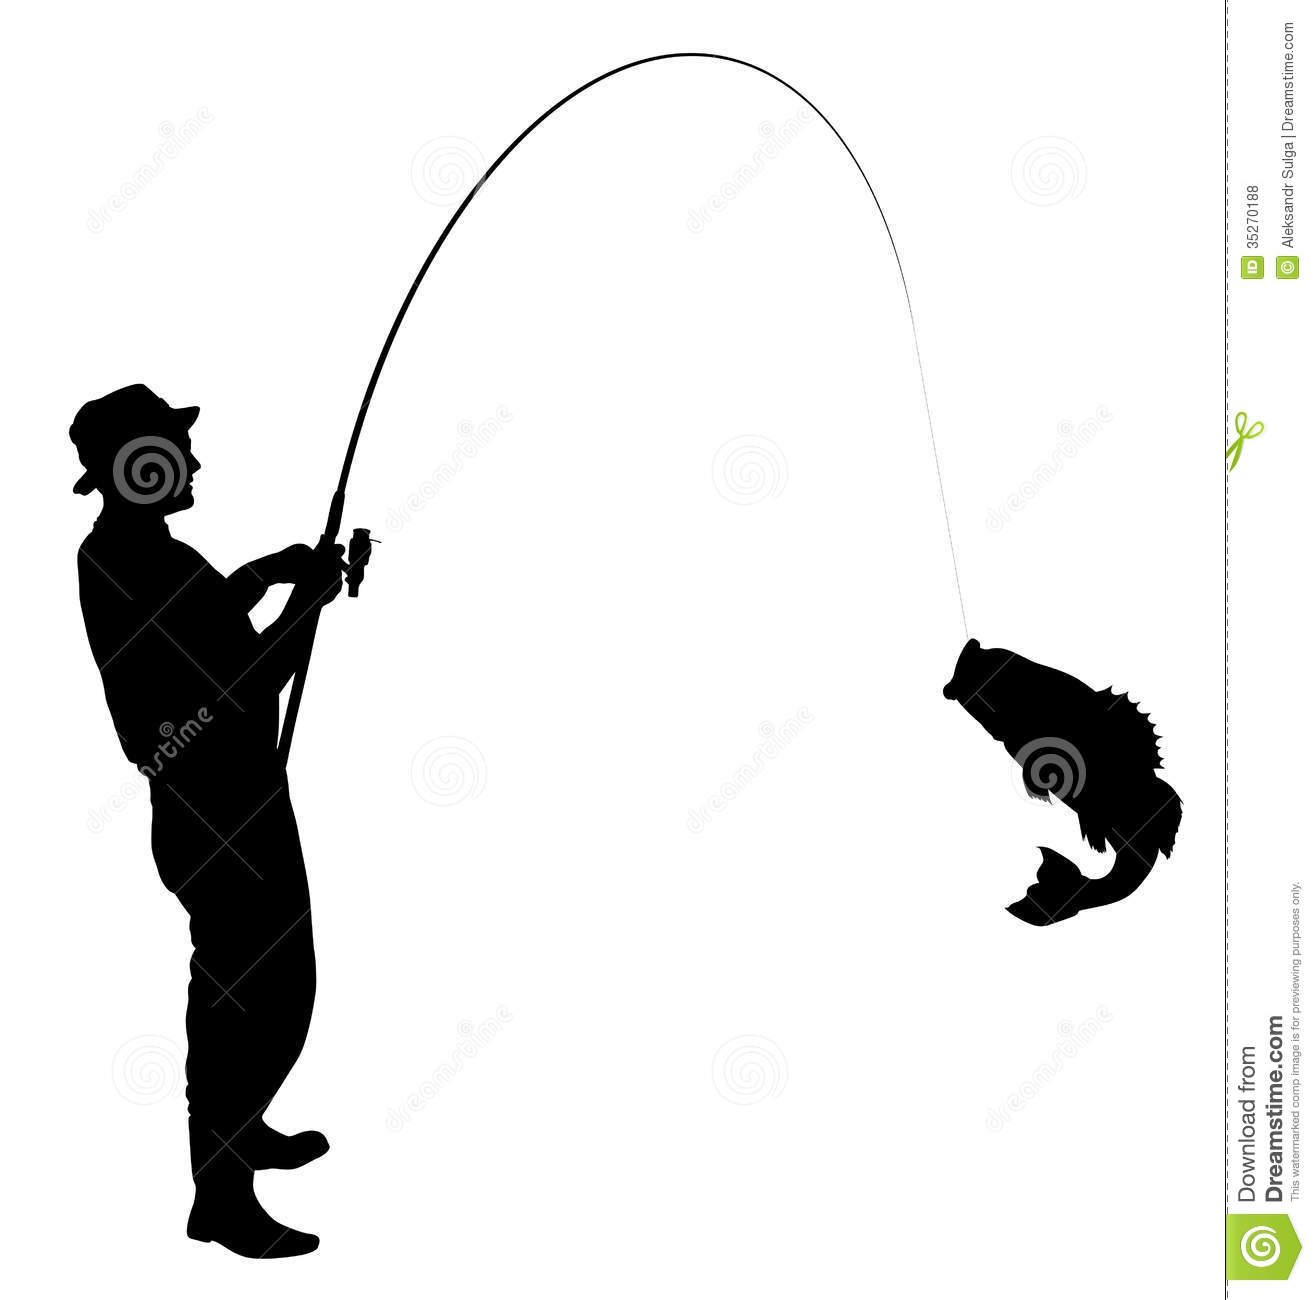 Fishing Silhouette Royalty Free Stock Photos - Image: 35270188